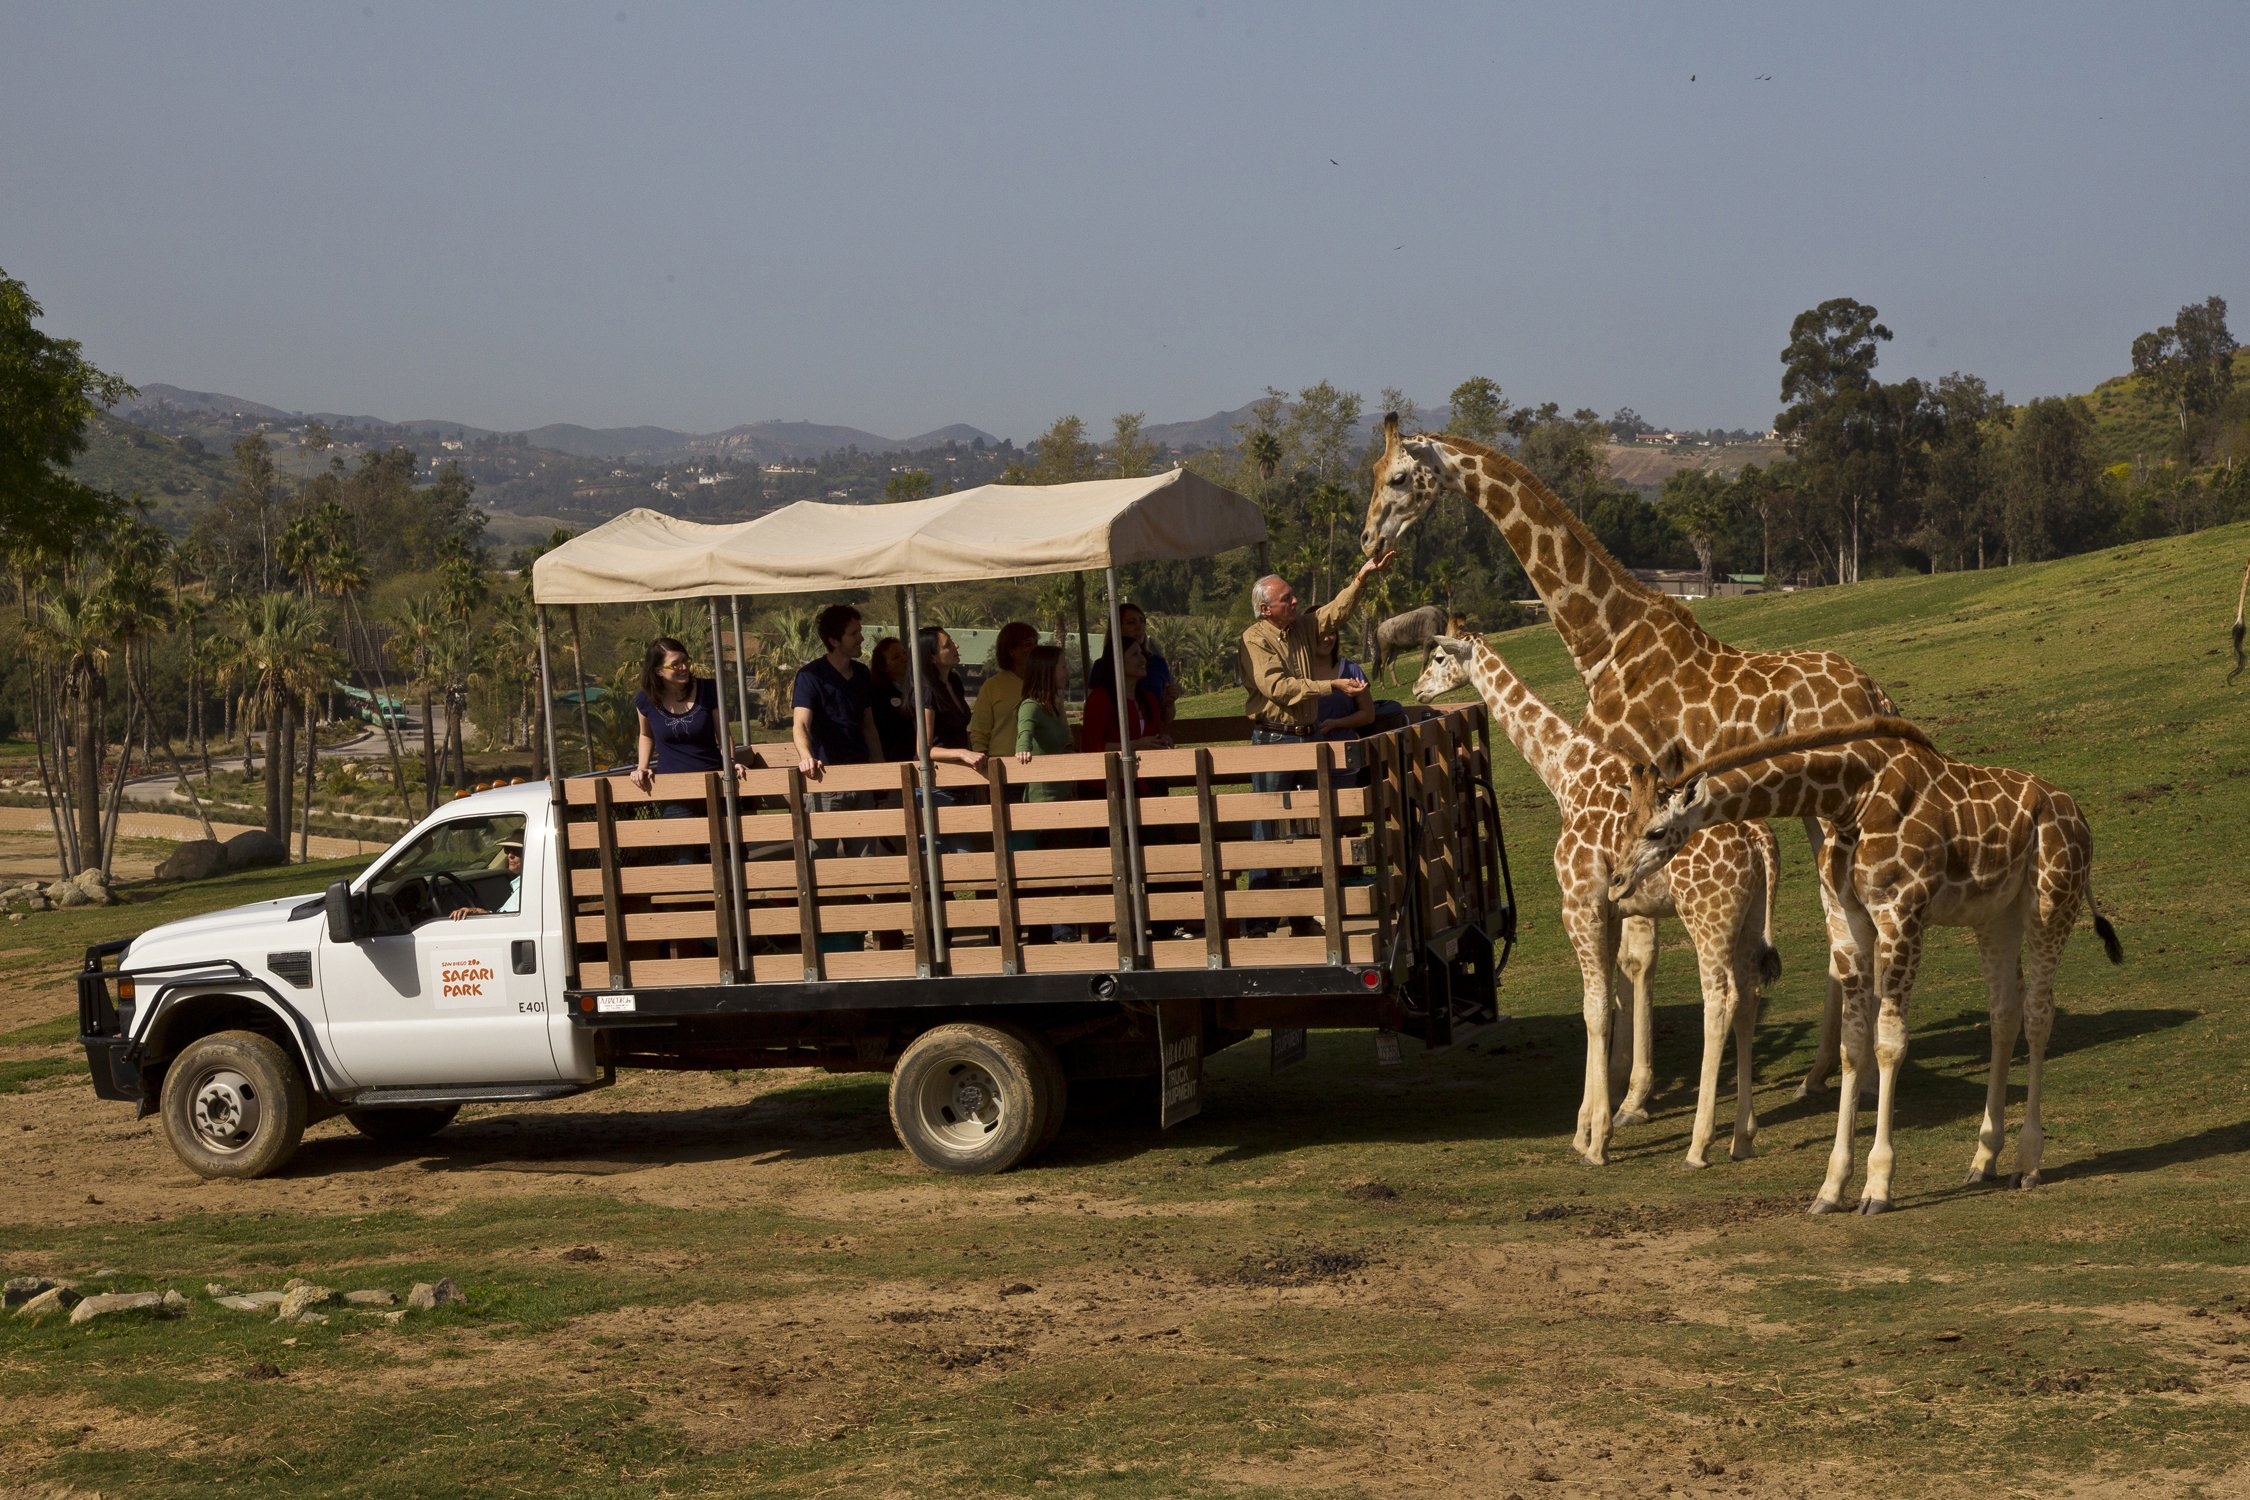 Guests standing on the bed of truck (protected by rails and a canopy for shade) feed giraffes in their enormous habitat.